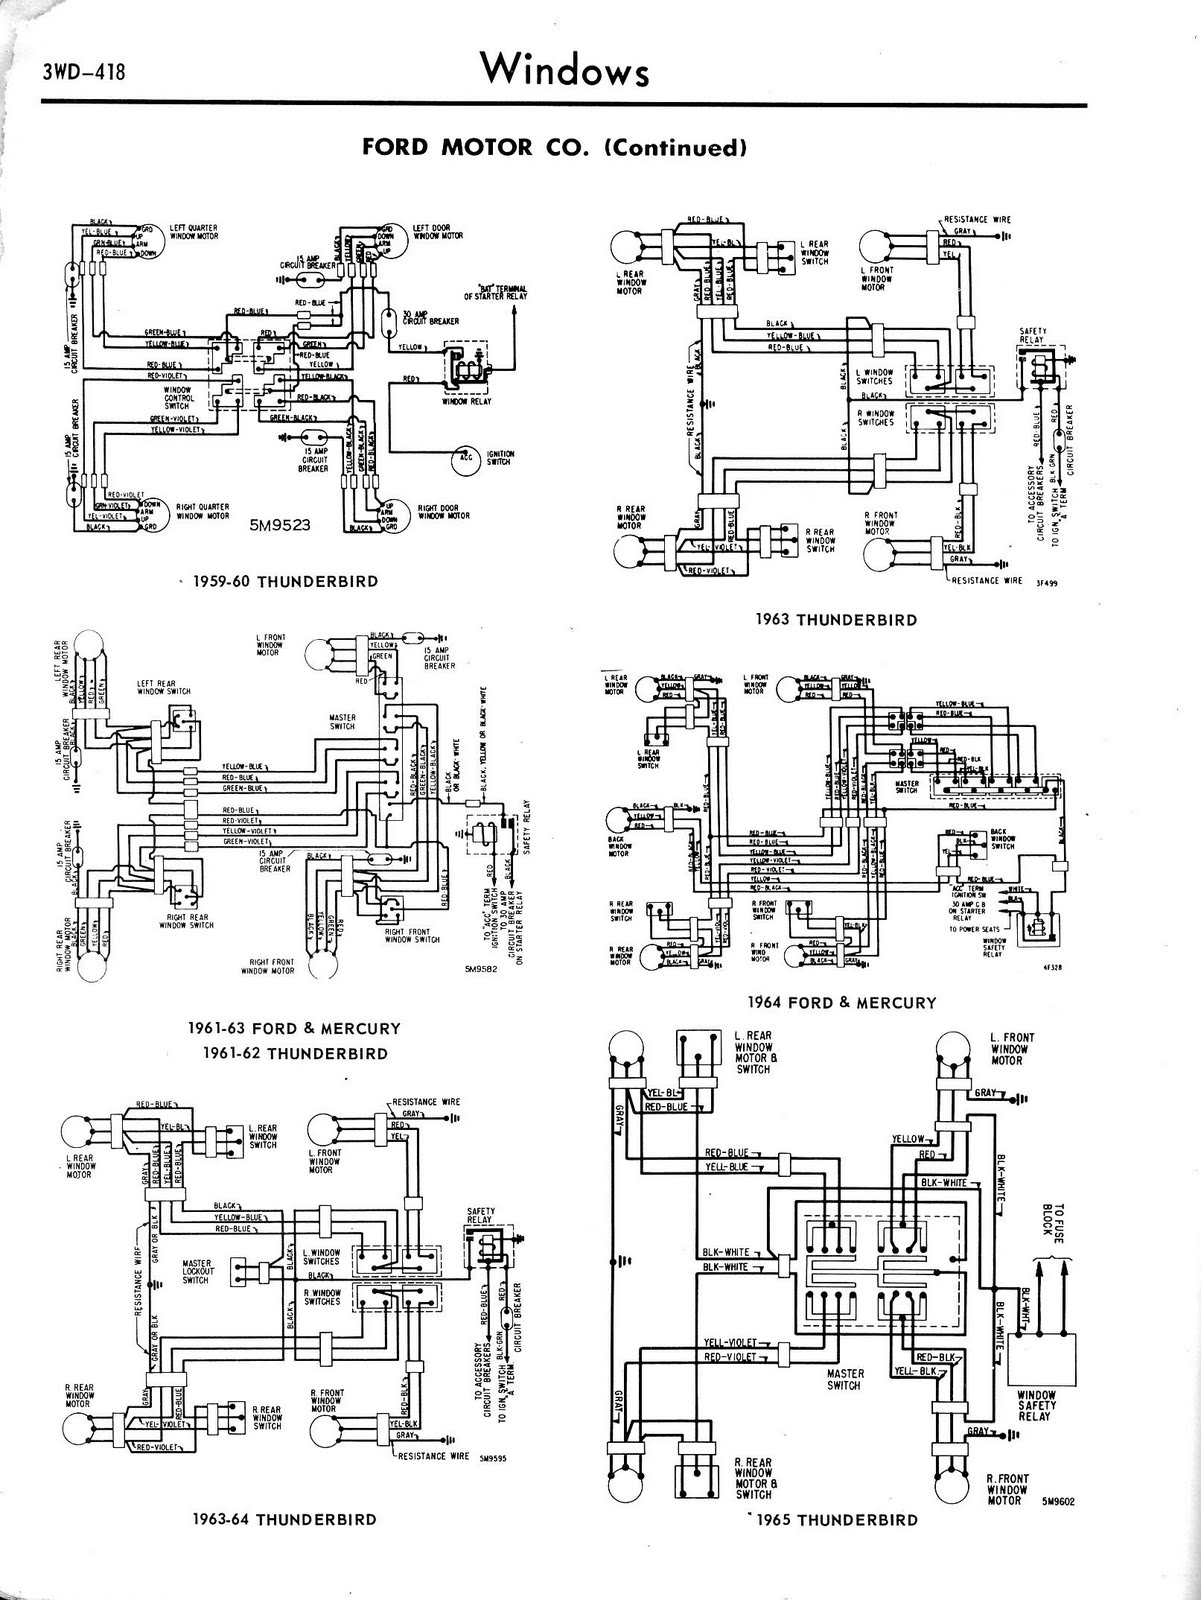 1961 390 cadillac engine vacuum hose diagram 1964 ford thunderbird fuse box layout #12